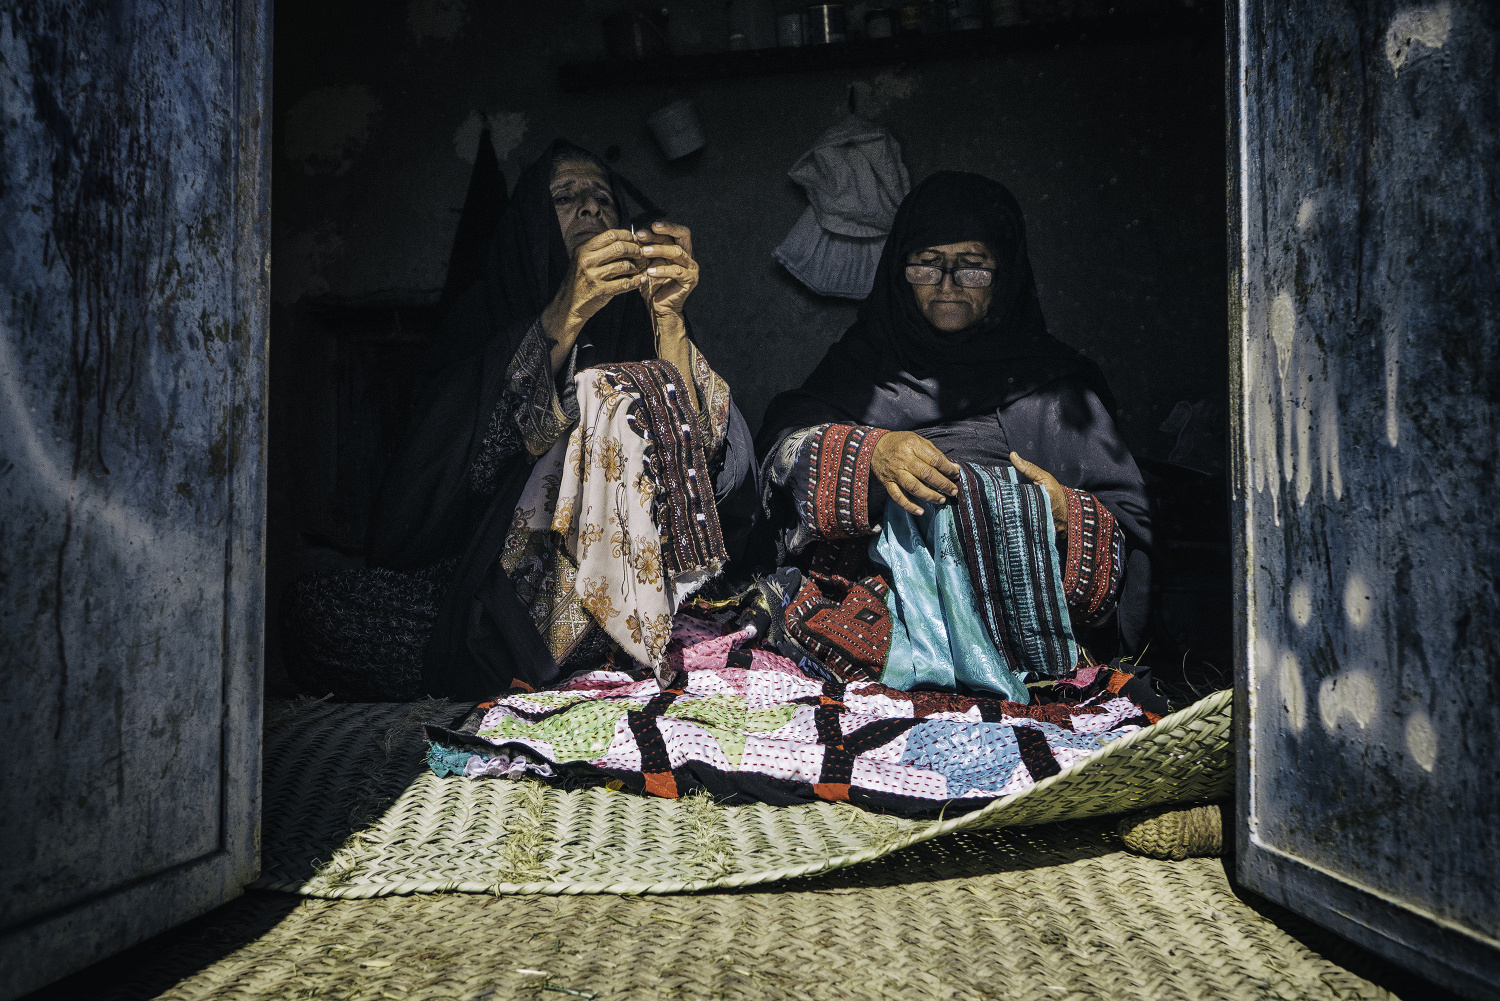 Sistan & Baluchistan Visual Journey, Ebrahim Miramalek, film still, 2014. Courtesy of the artist.